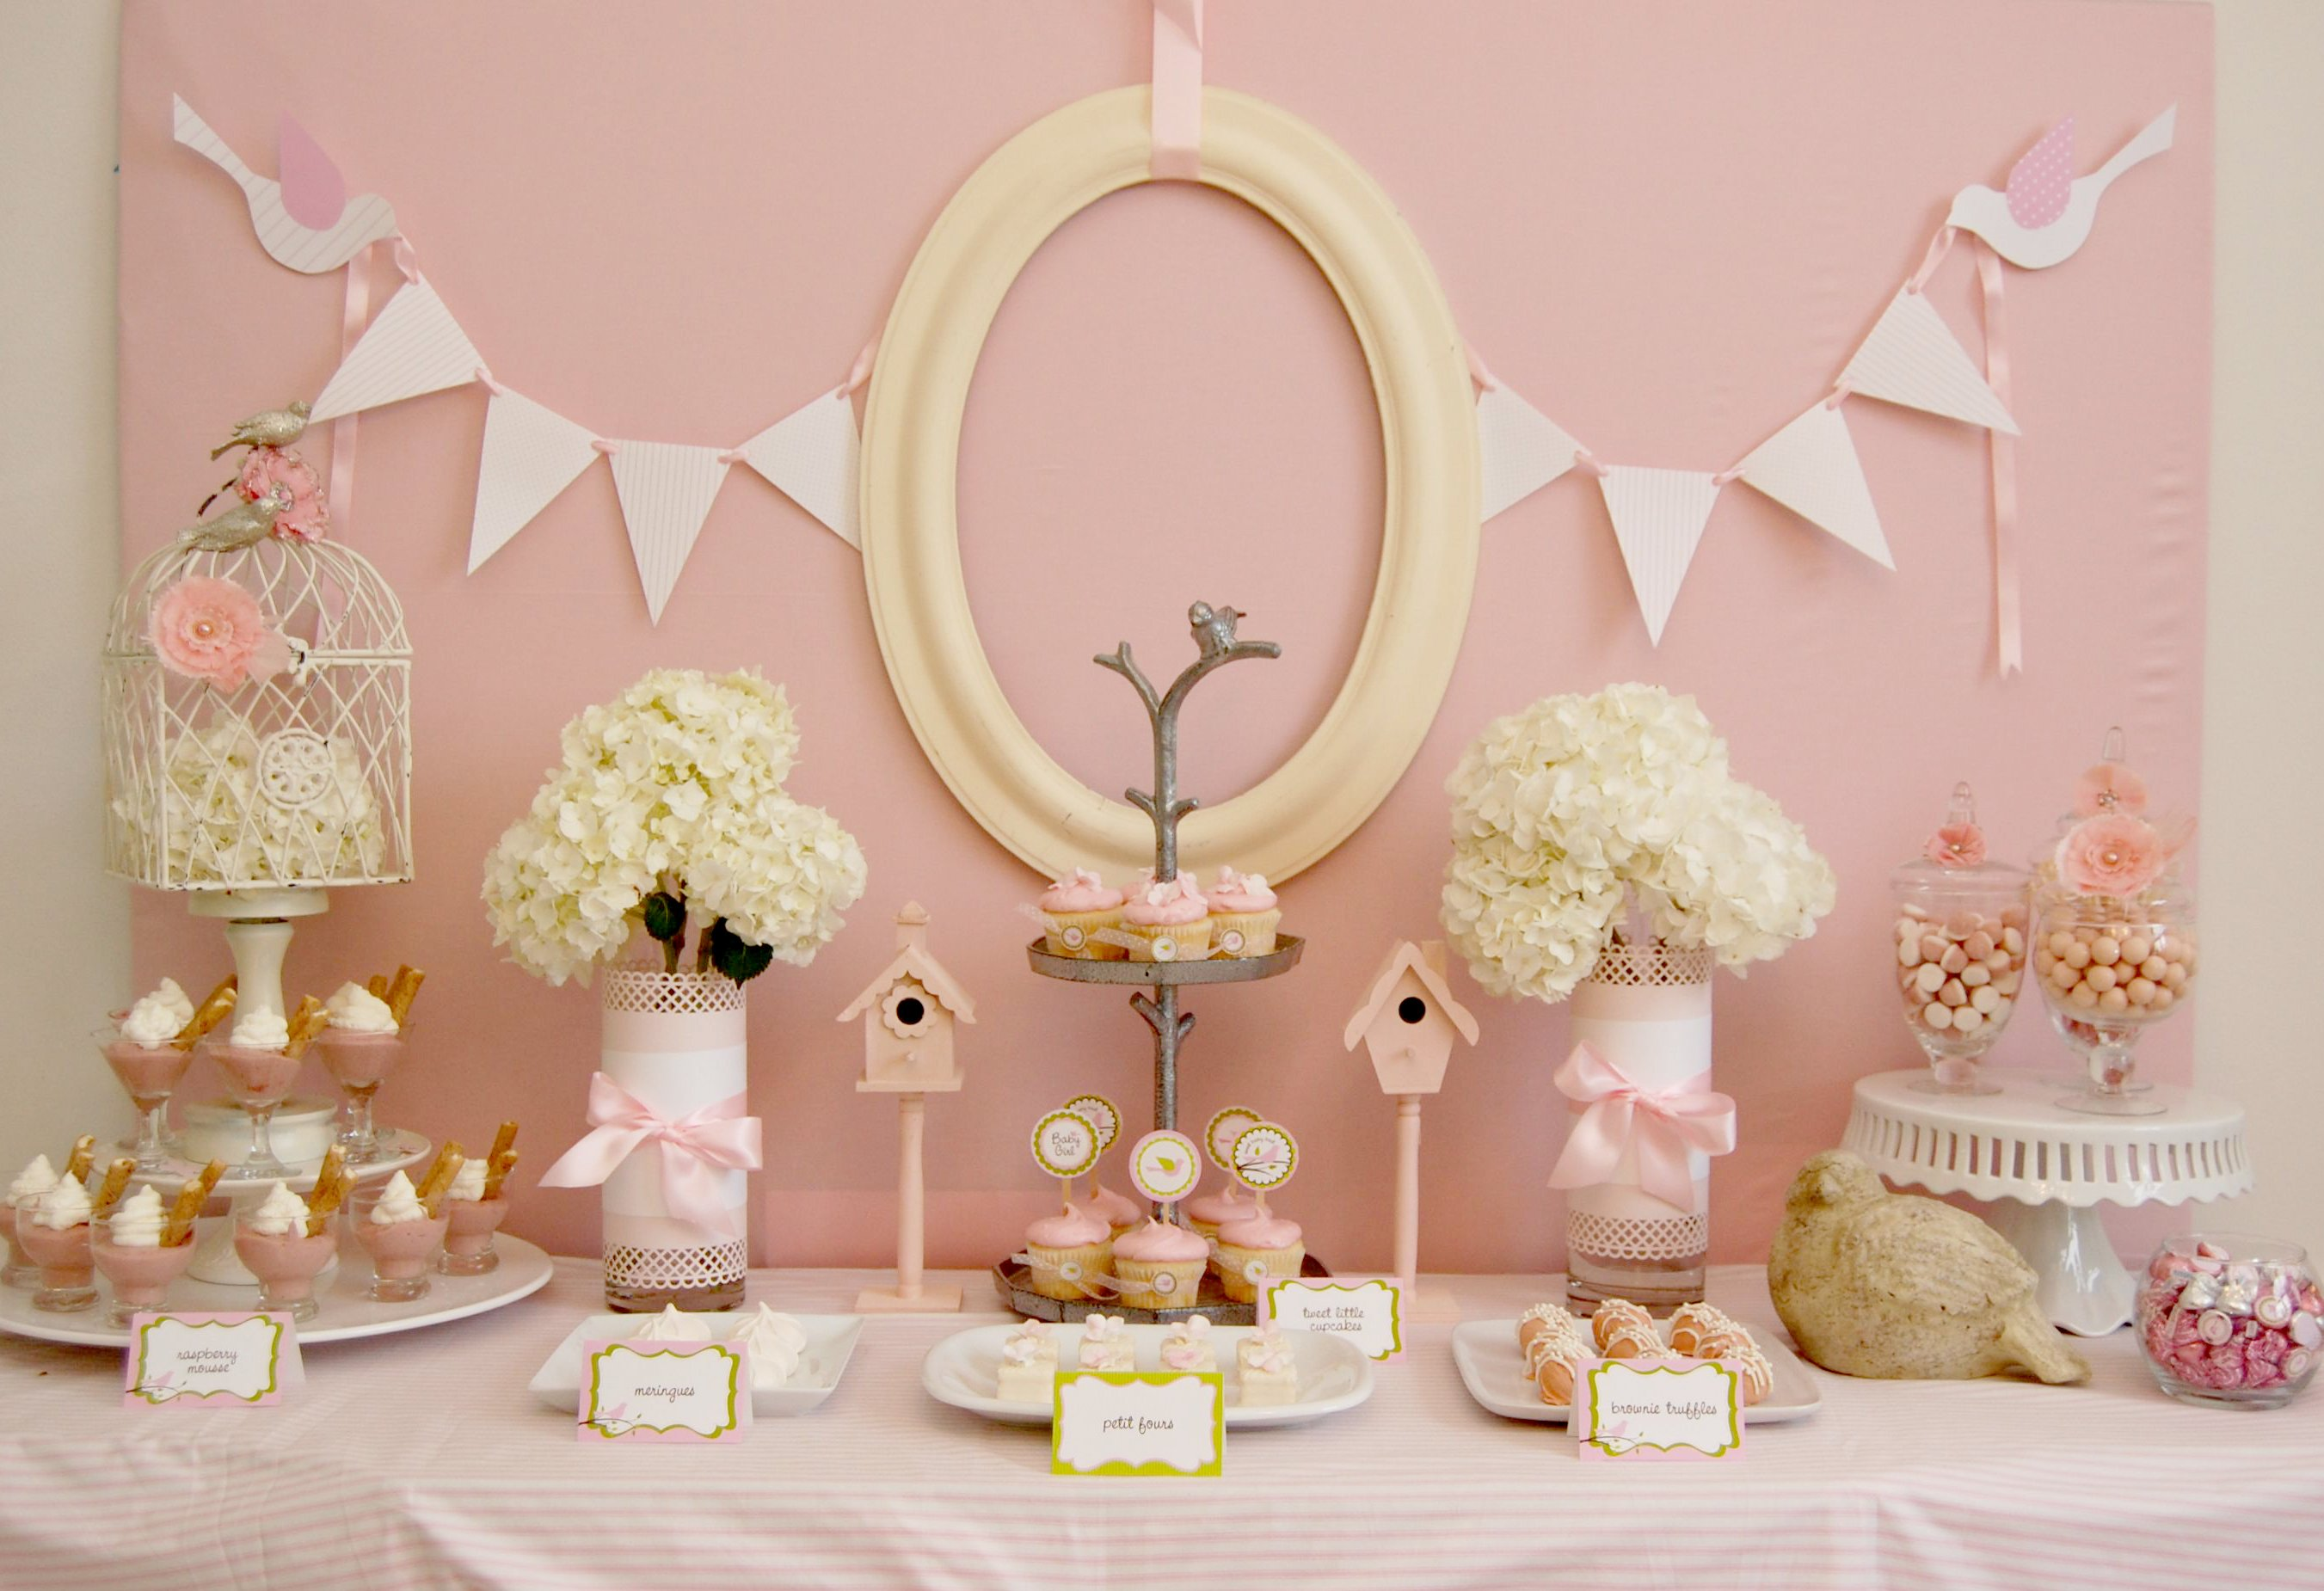 baby shower food ideas pinterest tags pink baby shower bird